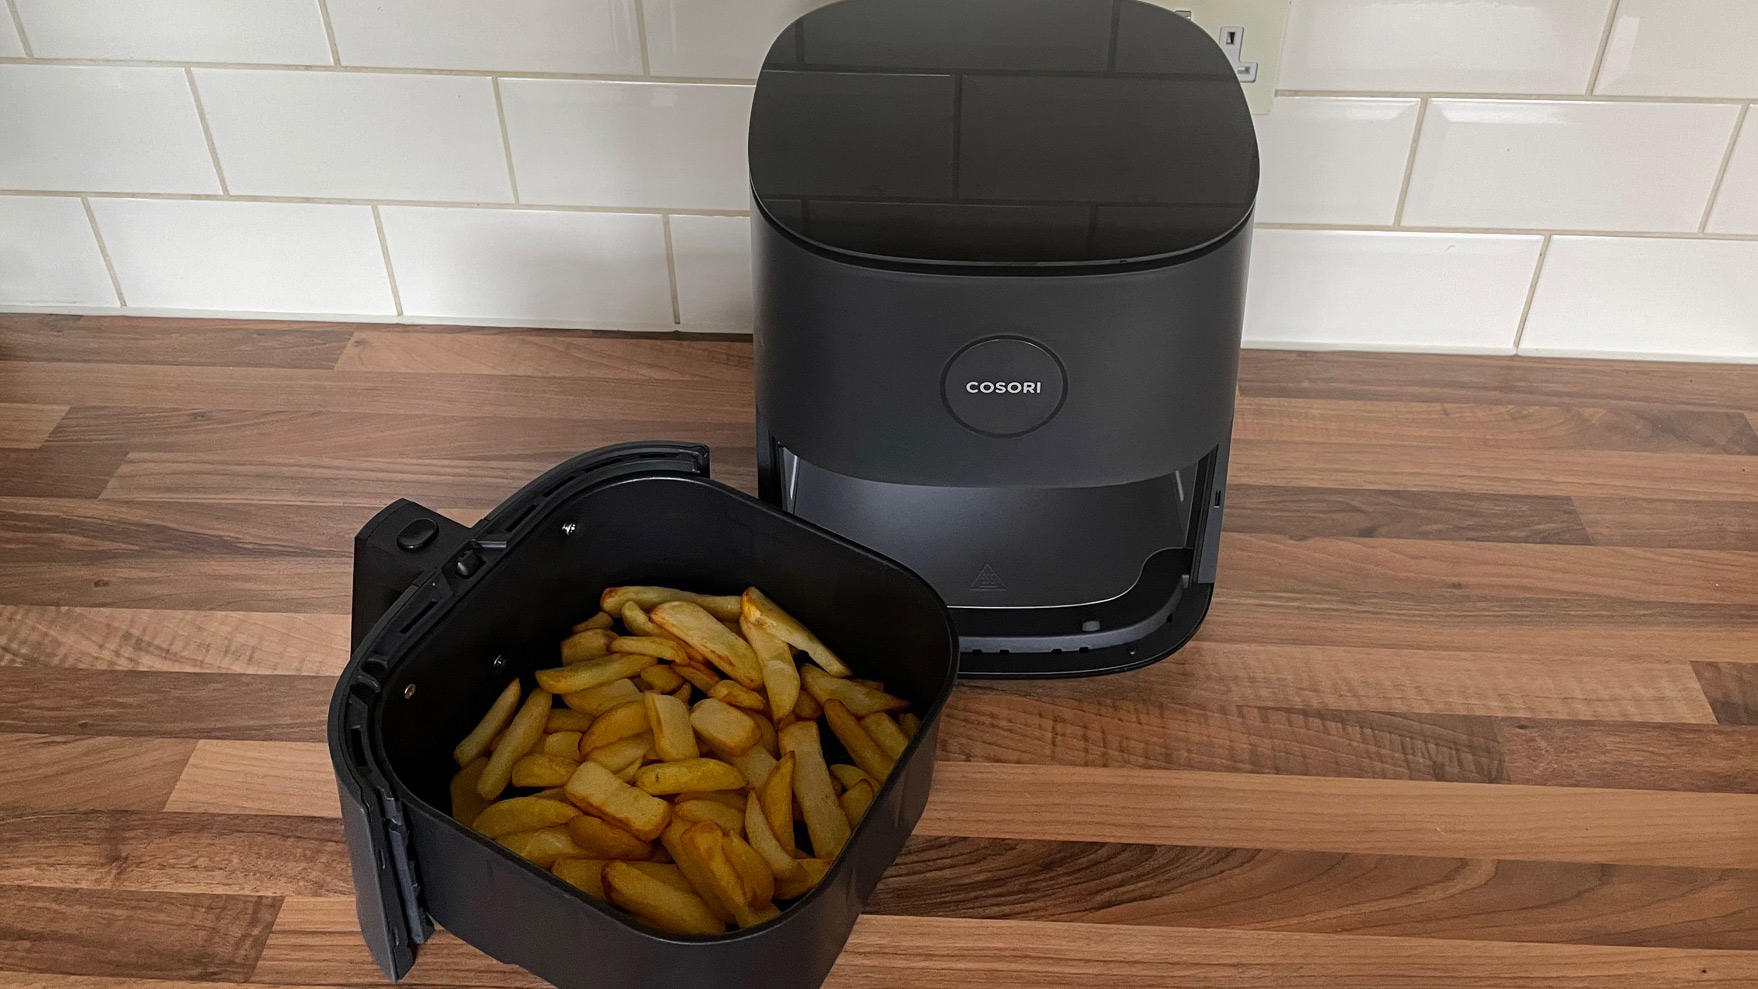 The Cosori Pro LE Air Fryer L501 with the frying basket containing fries removed